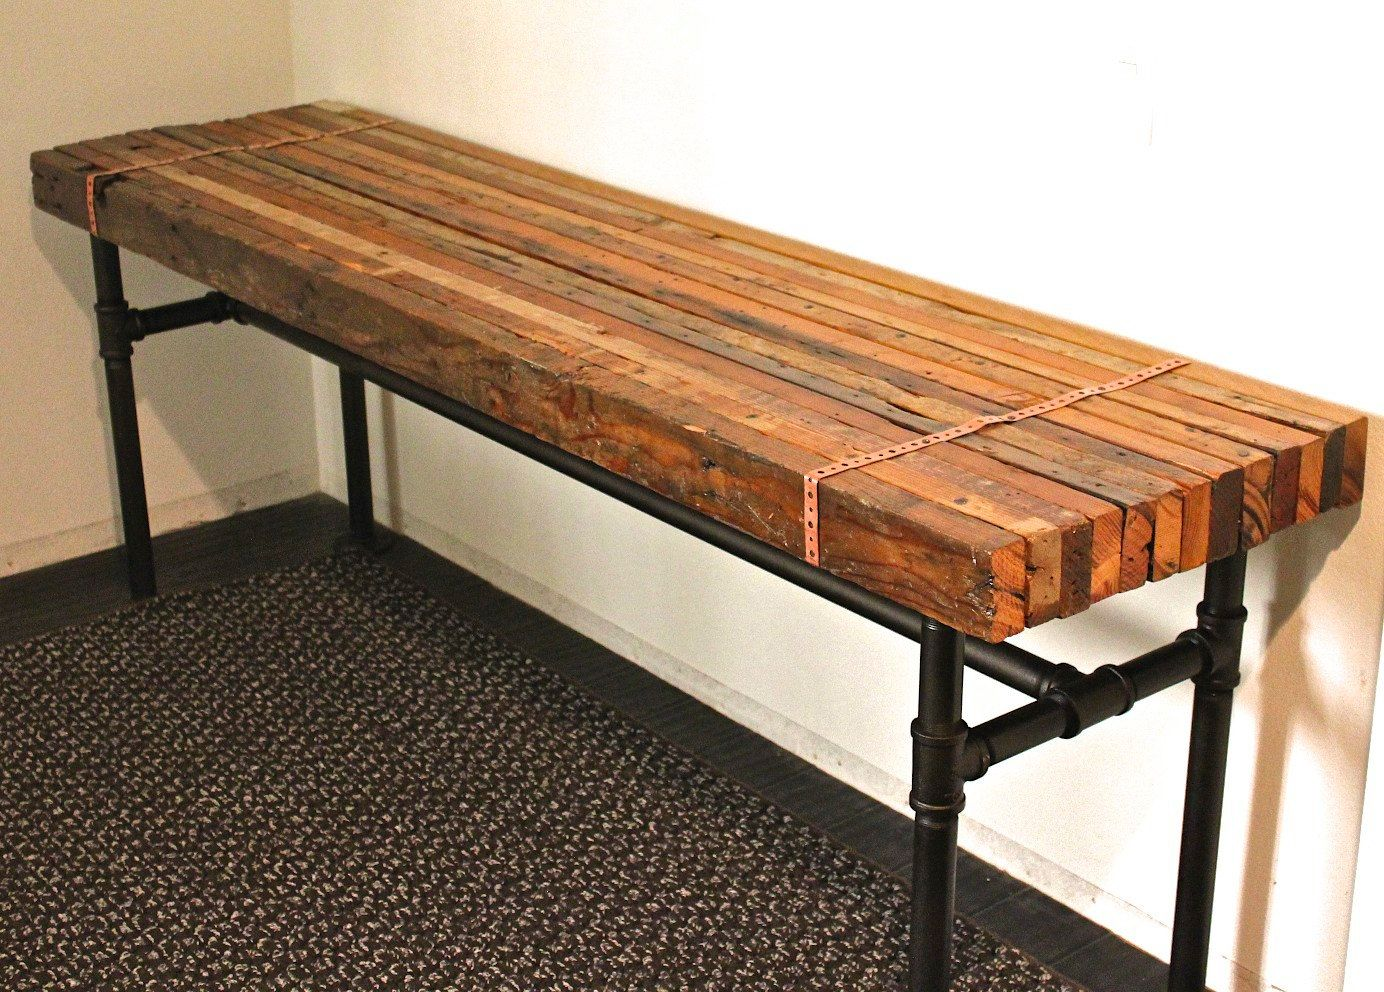 Reclaimed wood desk 100 handmade custom by zacharyhopkins for Reclaimed wood table designs